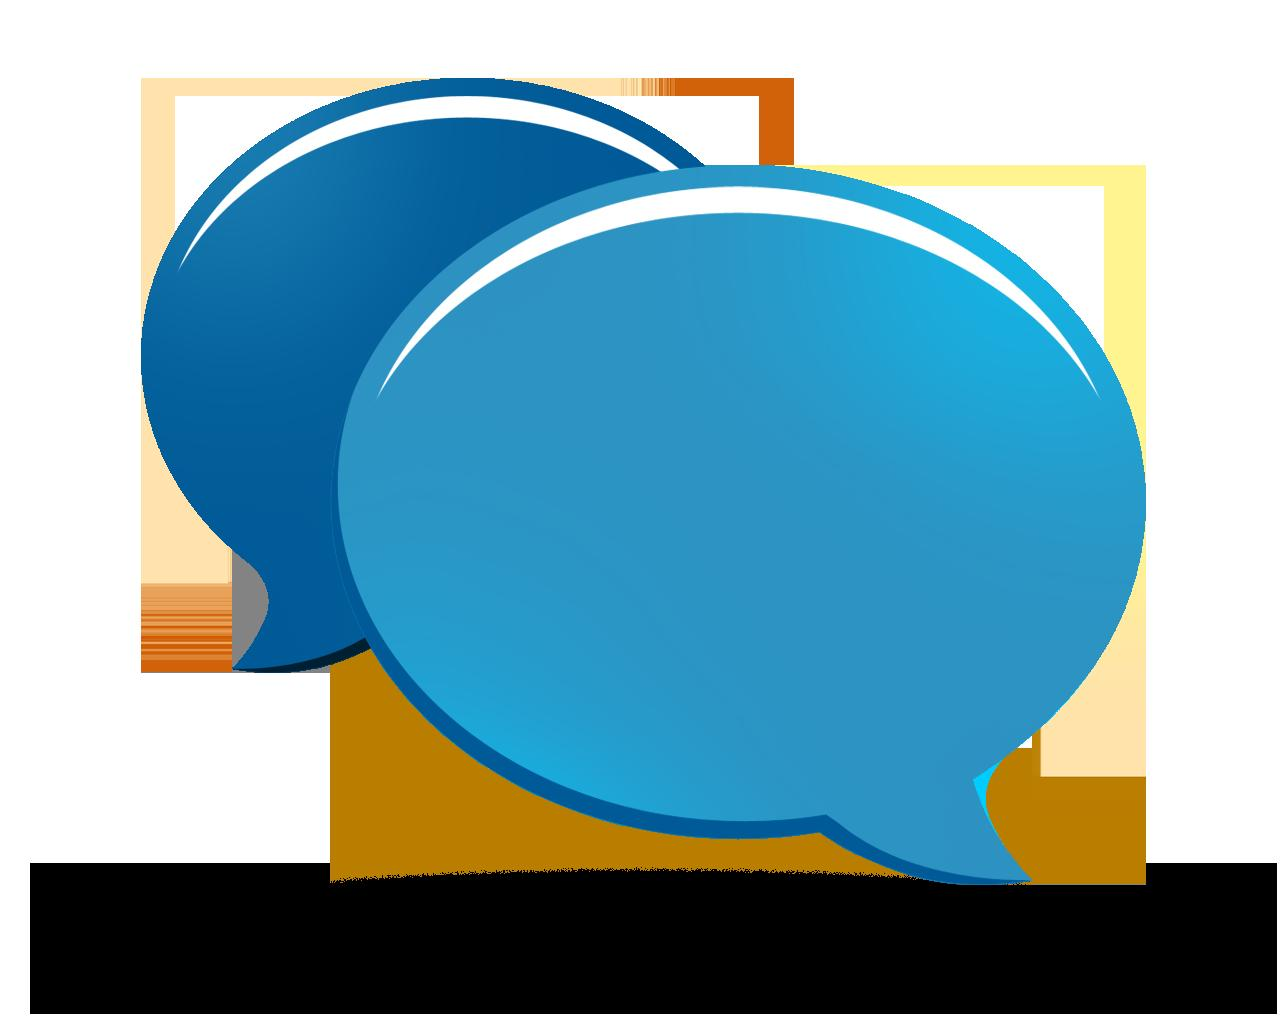 california chat site It has so many different free chat rooms that i love but i think preps chat is the best i have so much fun chatting with different ppl i highly recommend using this site.